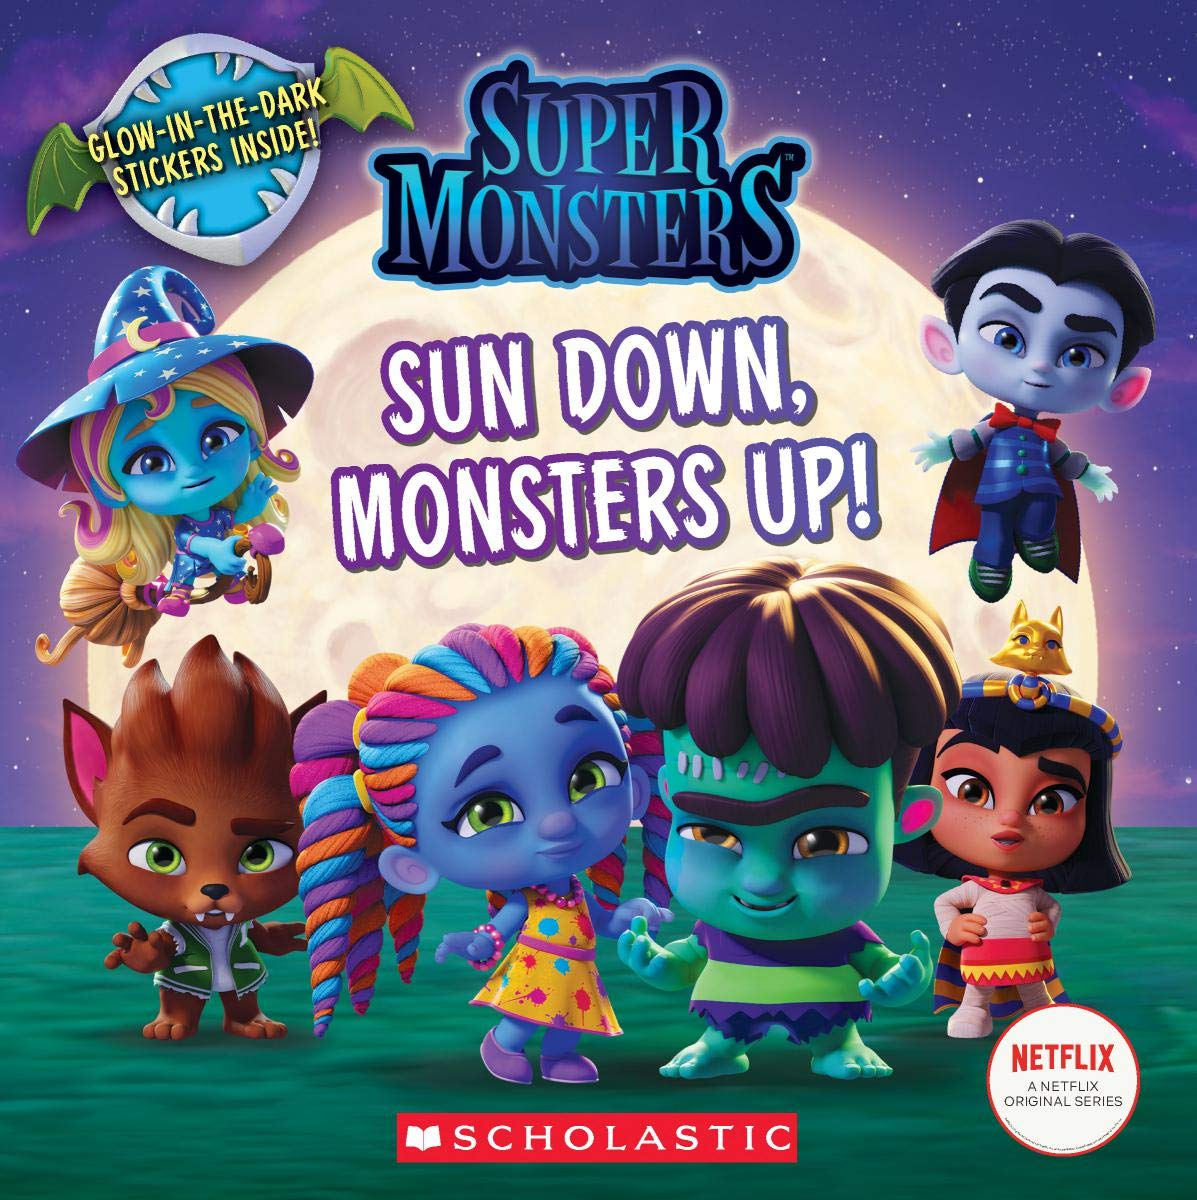 Sun Down Monsters Up Super Monsters 8x8 Storybook Scholastic Rusu Meredith 9781338354935 Amazon Com Books